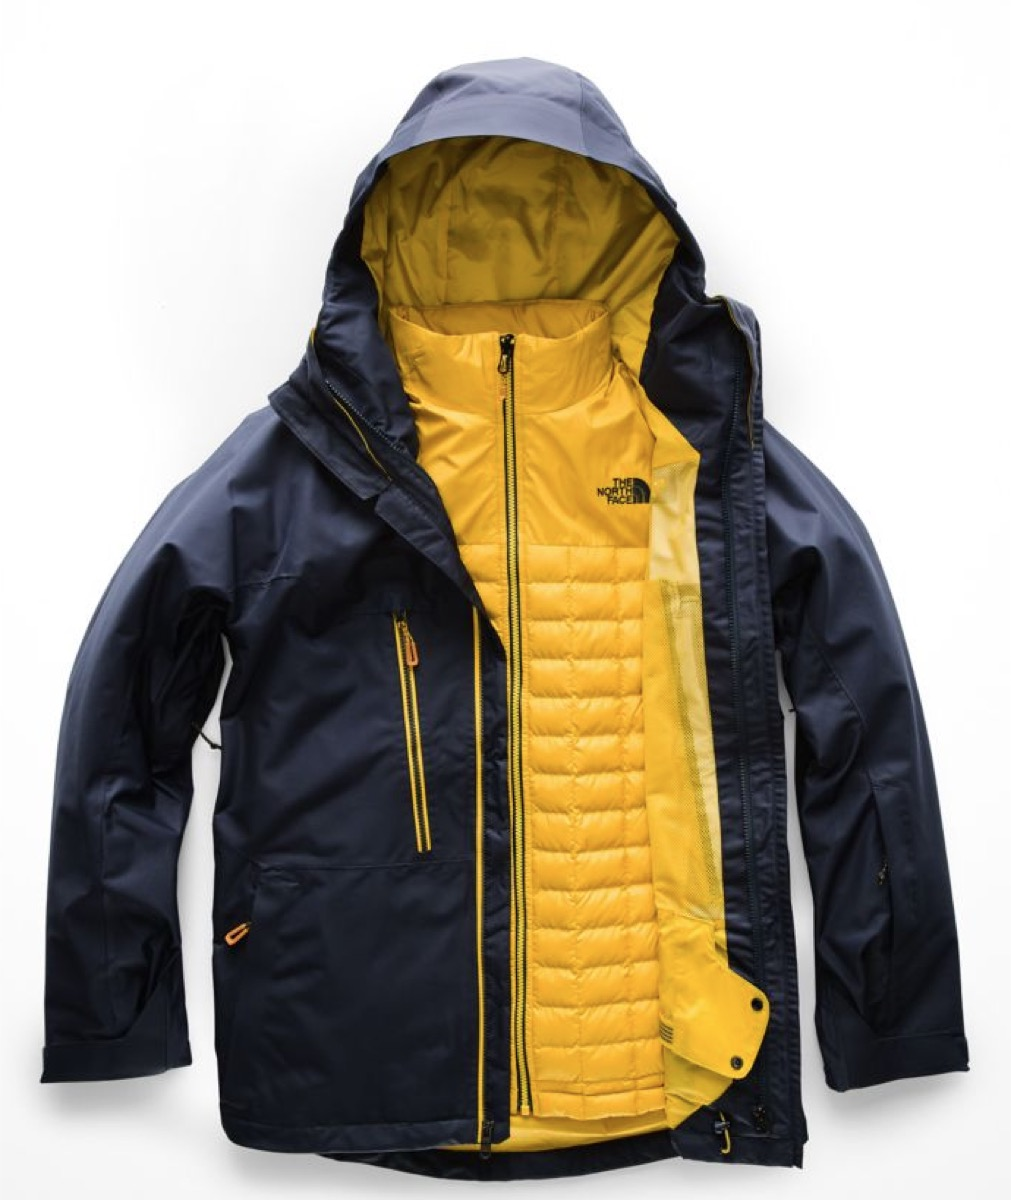 North Face Thermoball Jacket buy after holidays